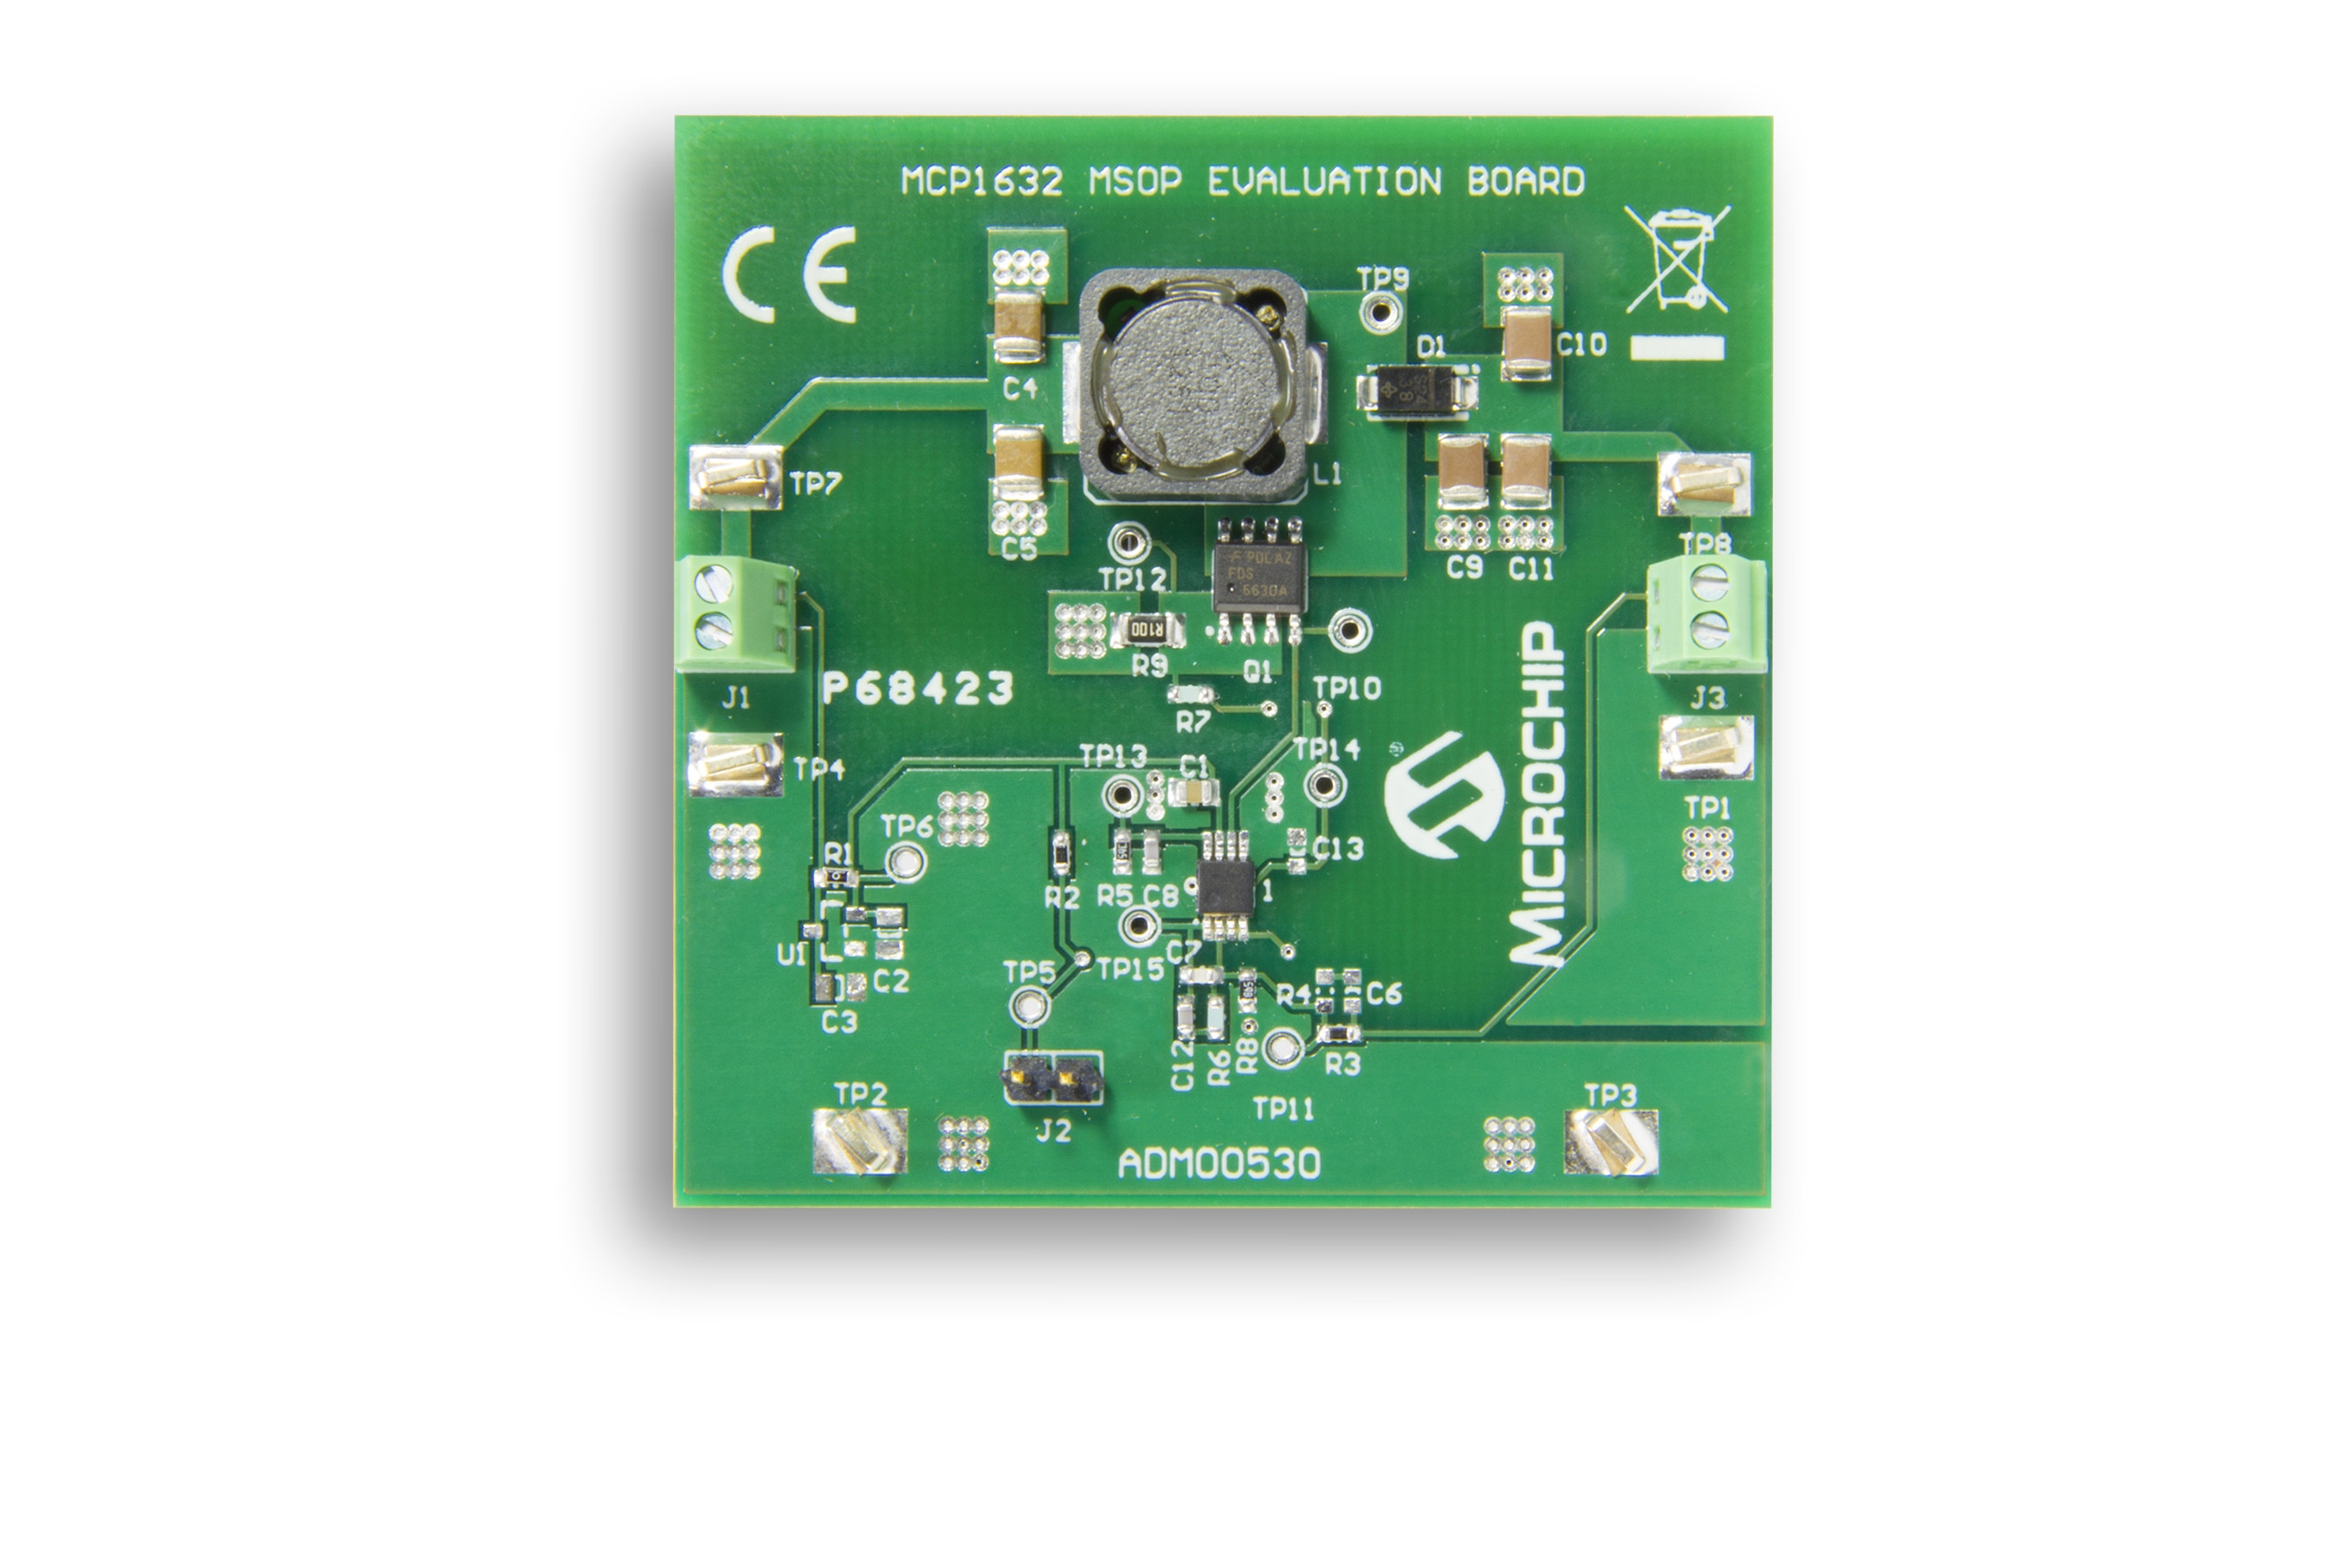 Development Tools Designing Coupled Inductors Dcdc Converters Content From Power The Mcp1632 300 Khz Boost Converter Demo Board Is A Compact Highly Efficient Step Up Voltage That Will Convert Input Rail Typically